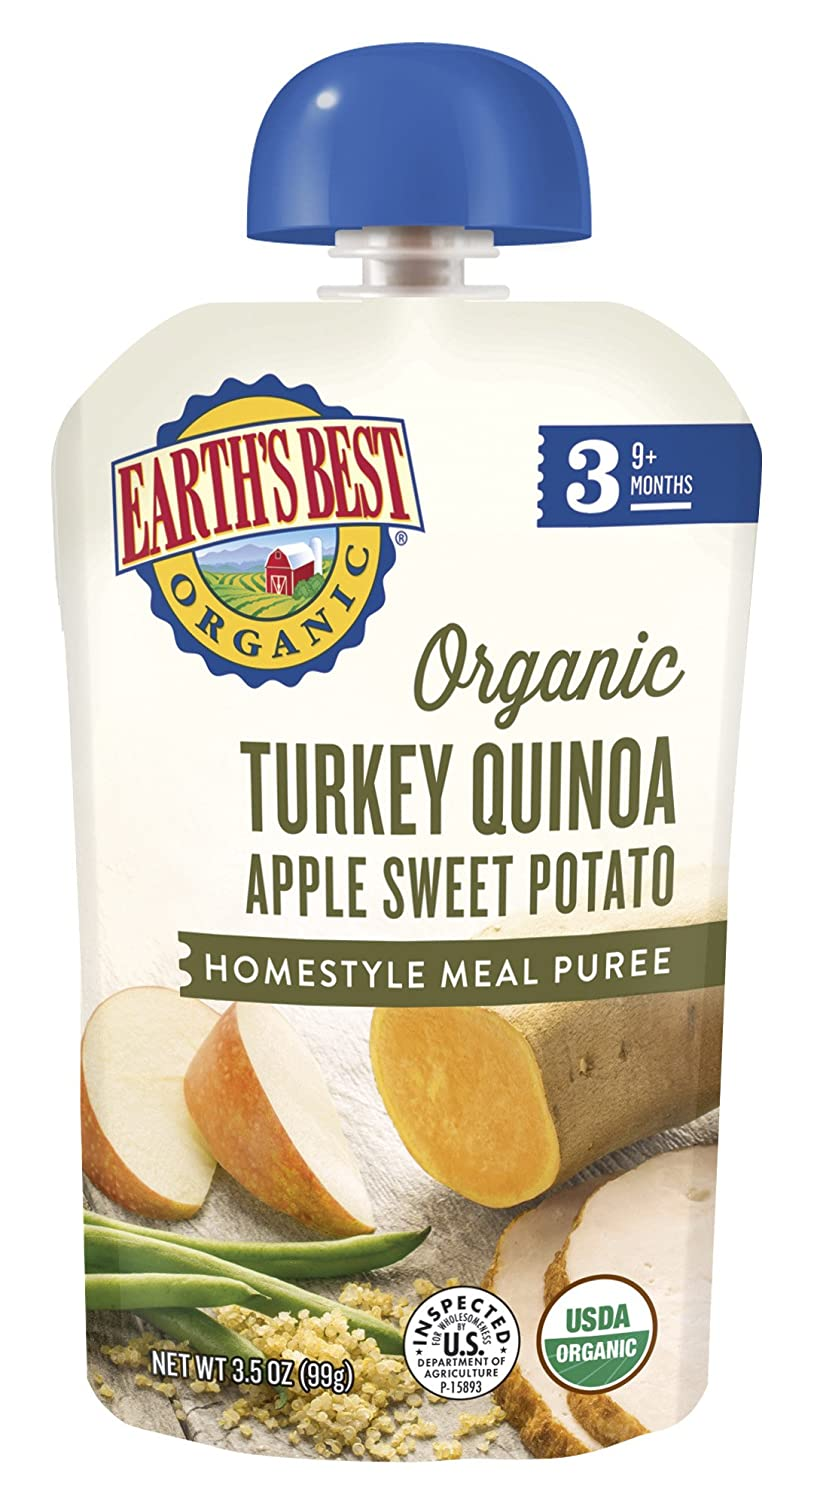 Earth's Best Organic Stage 3 Baby Food, Turkey Quinoa Apple Sweet Potato, 3.5 oz. Pouch Hain Group (Earth' s Best)